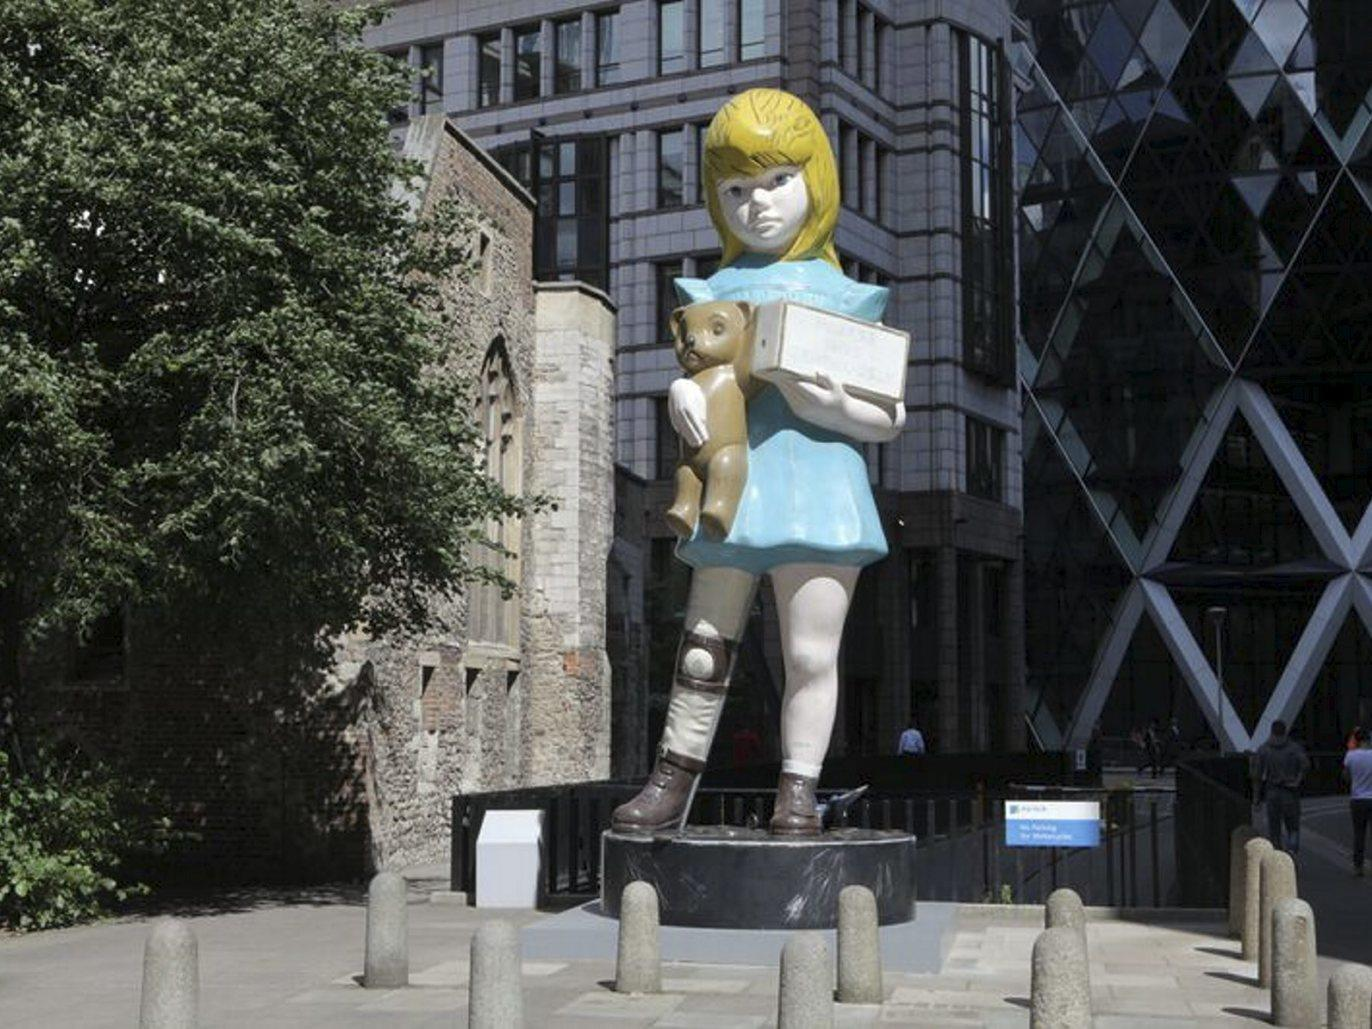 (Charity by Damien Hirst. Located at Undershaft, © Damien Hirst and Science Ltd. All rights reserved, DACS 2015. Photo: Nick Turpin)